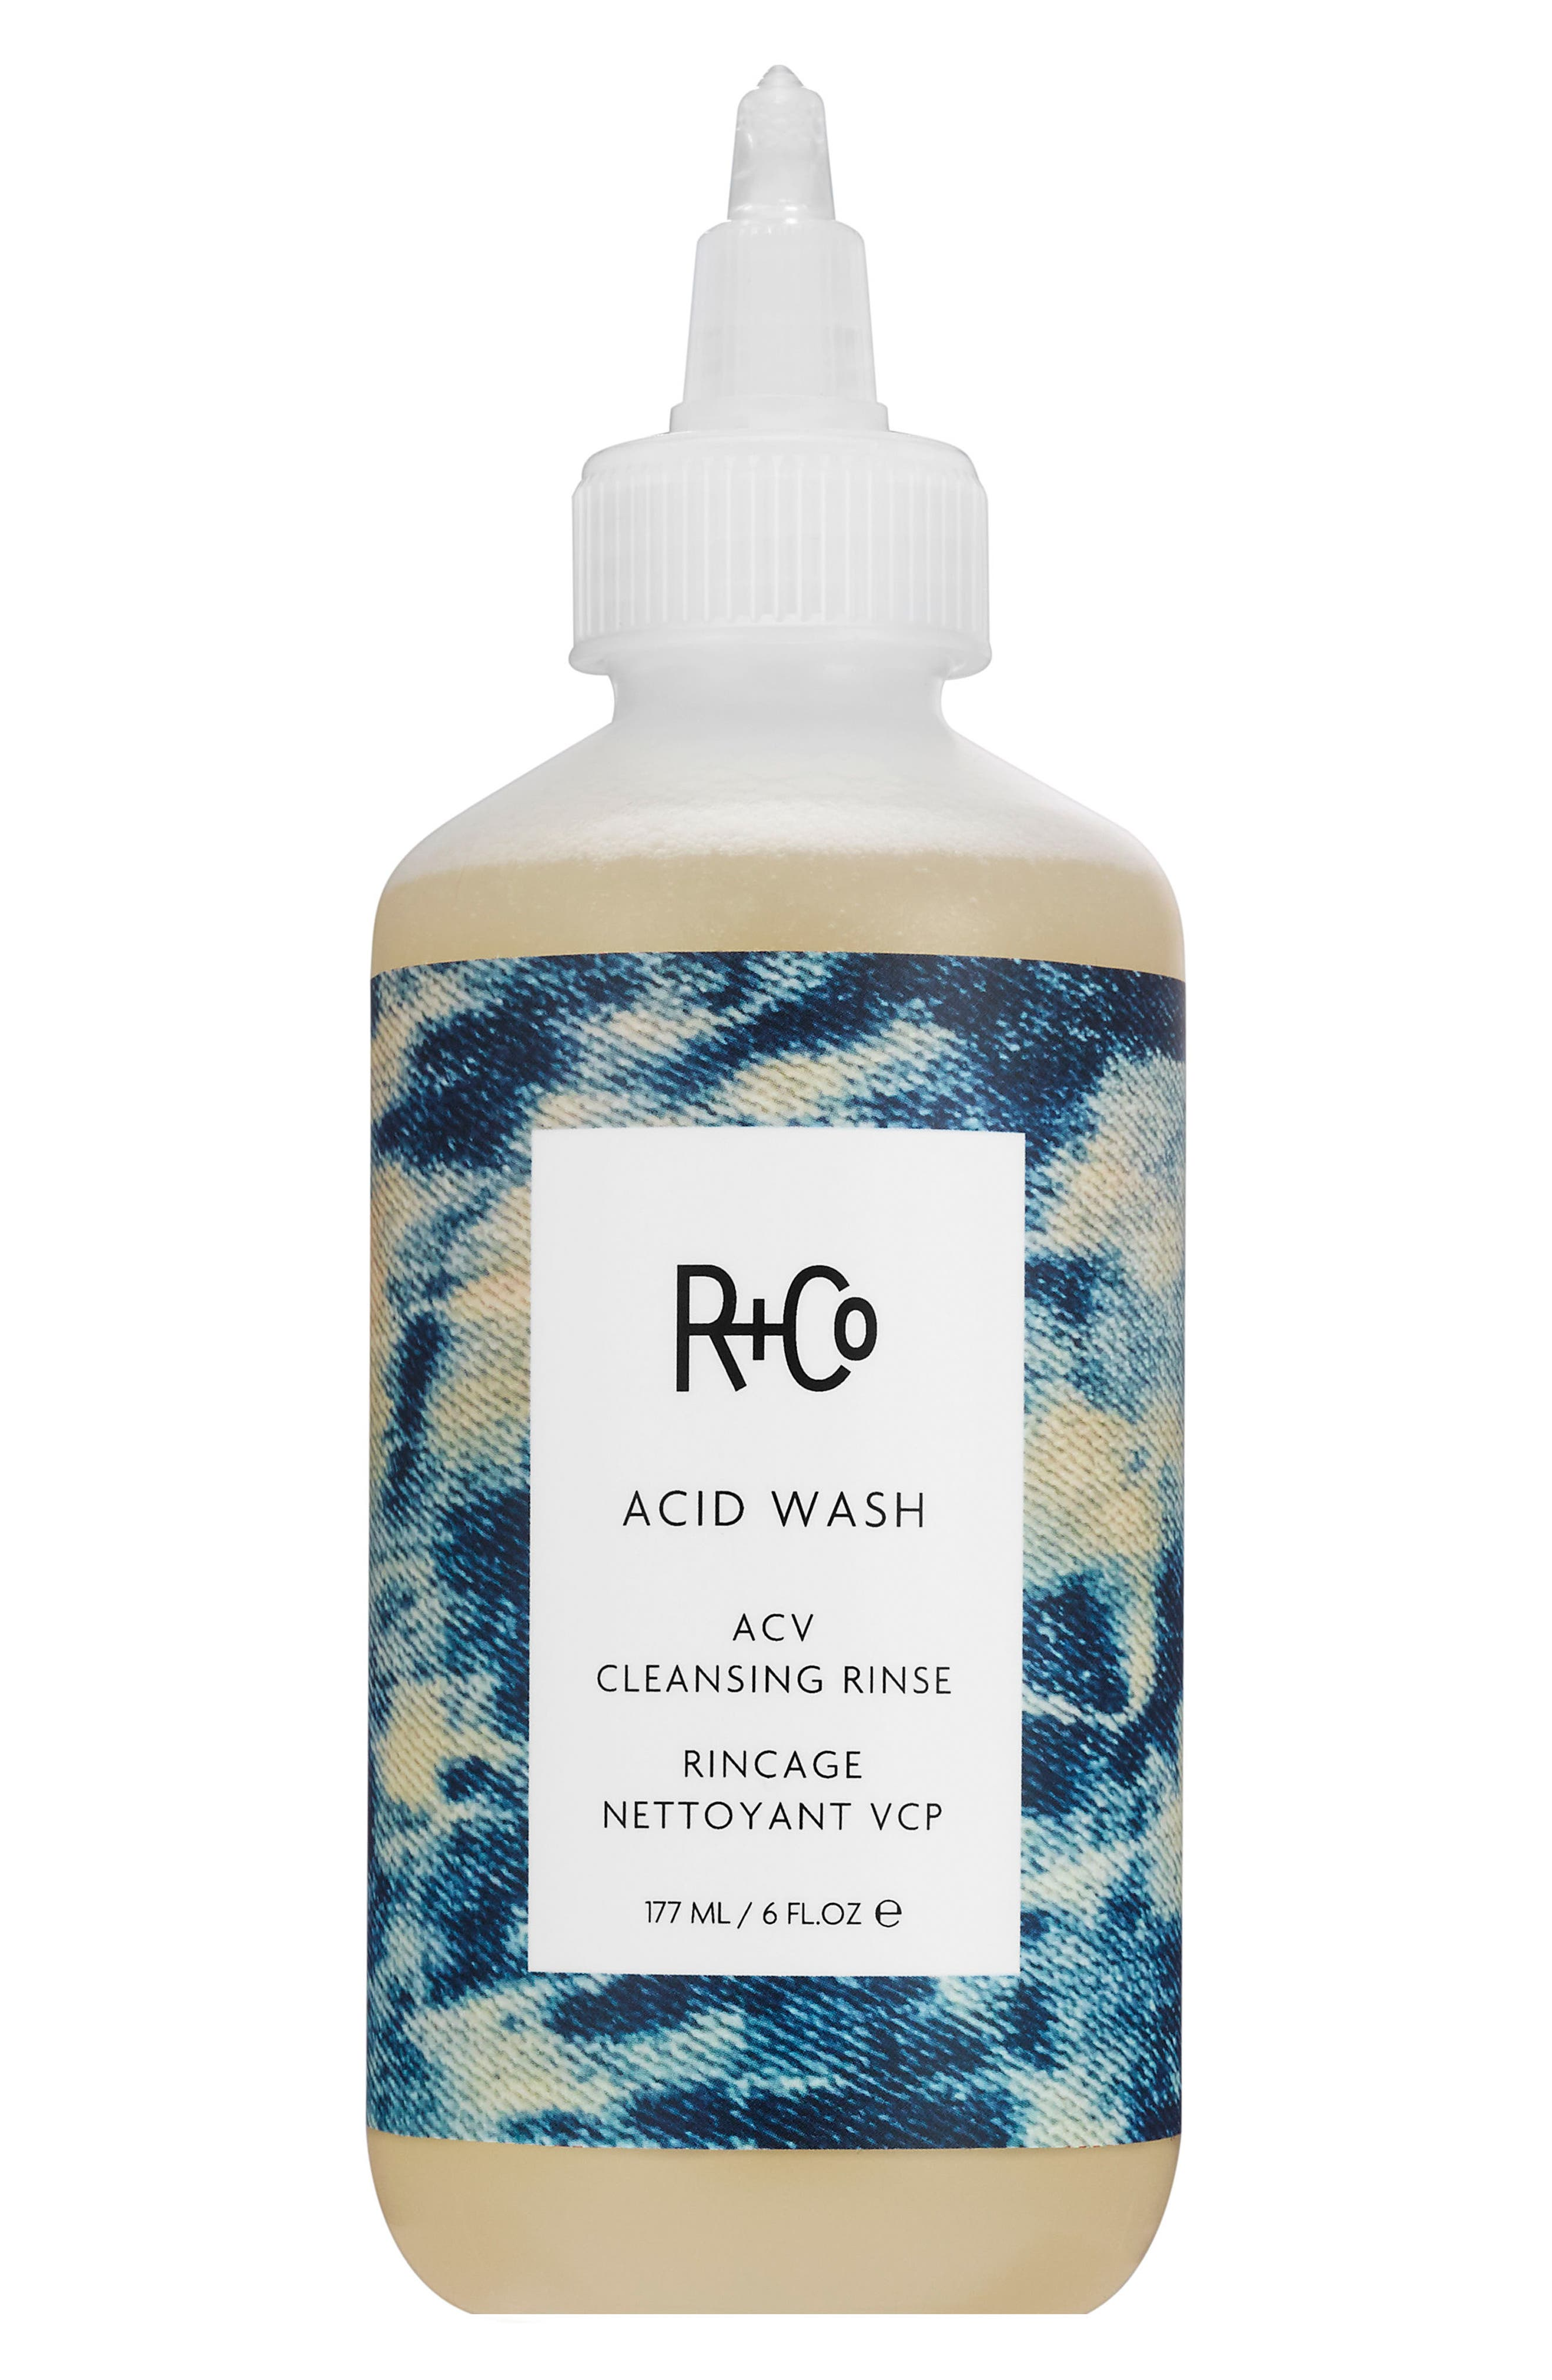 Main Image - SPACE.NK.apothecary R+Co Acid Wash ACV Cleansing Rinse